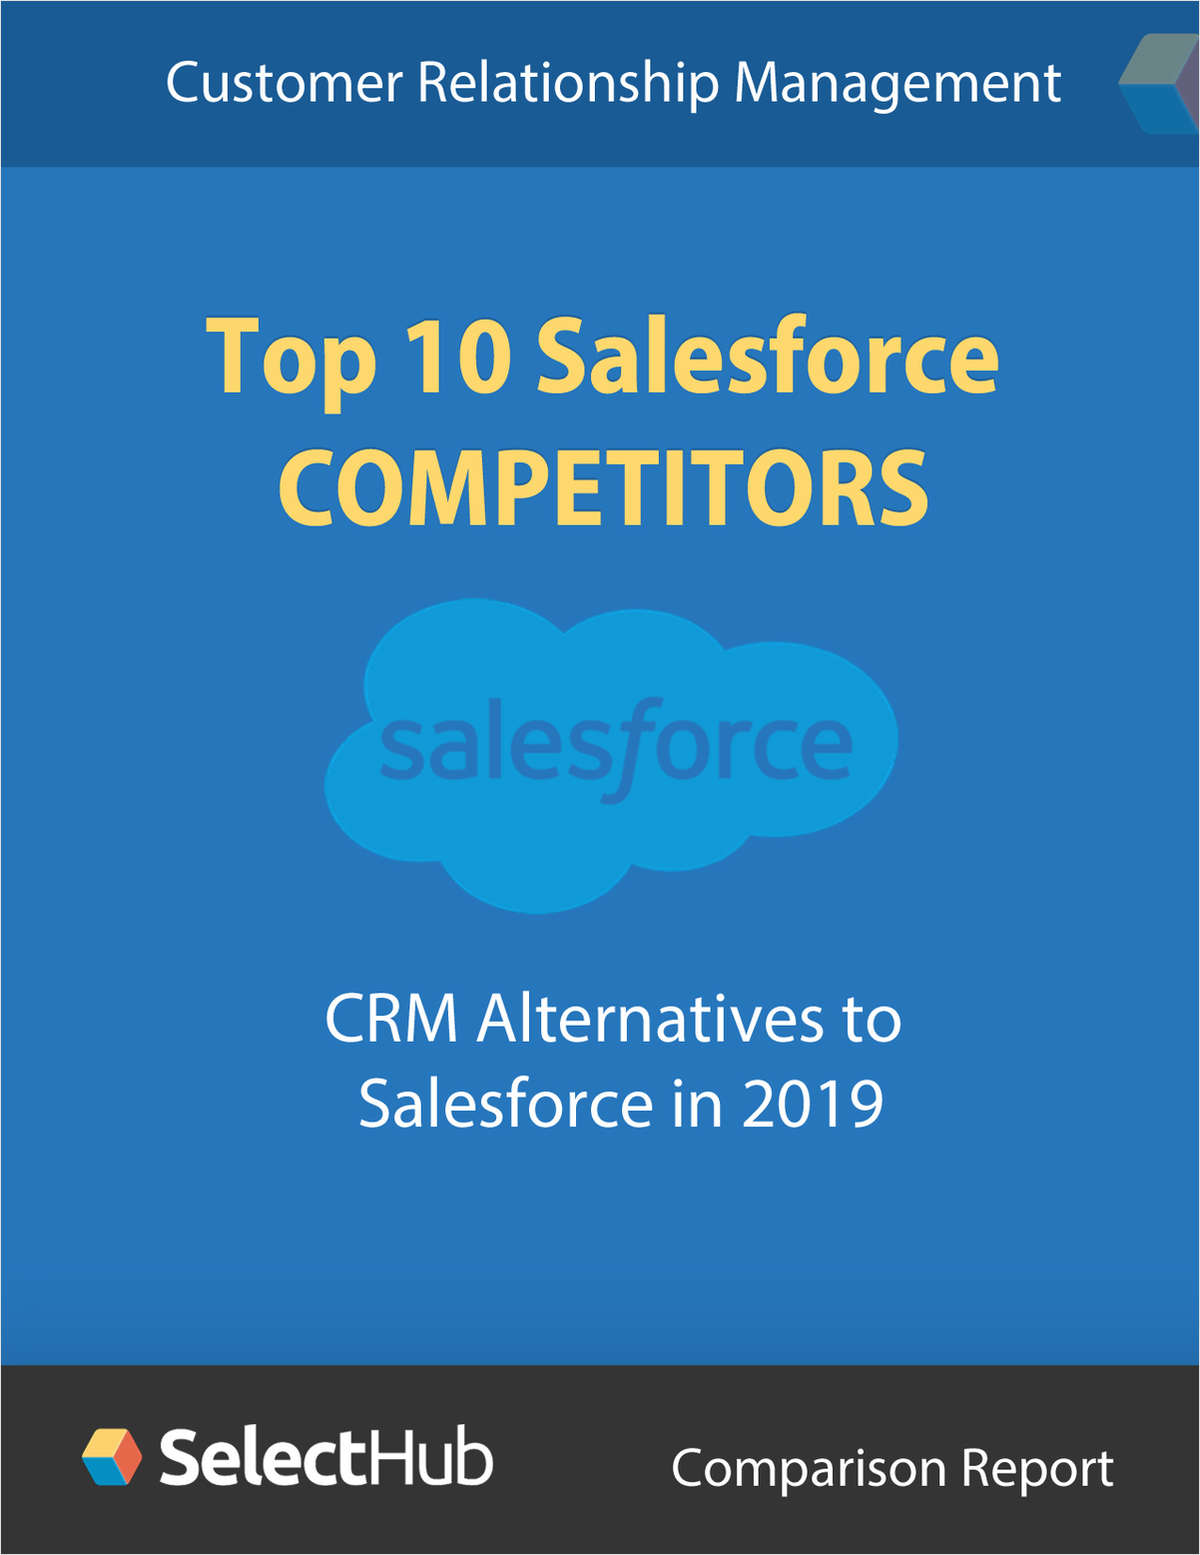 Top 10 Salesforce Competitors: CRM Alternatives to Salesforce in 2019